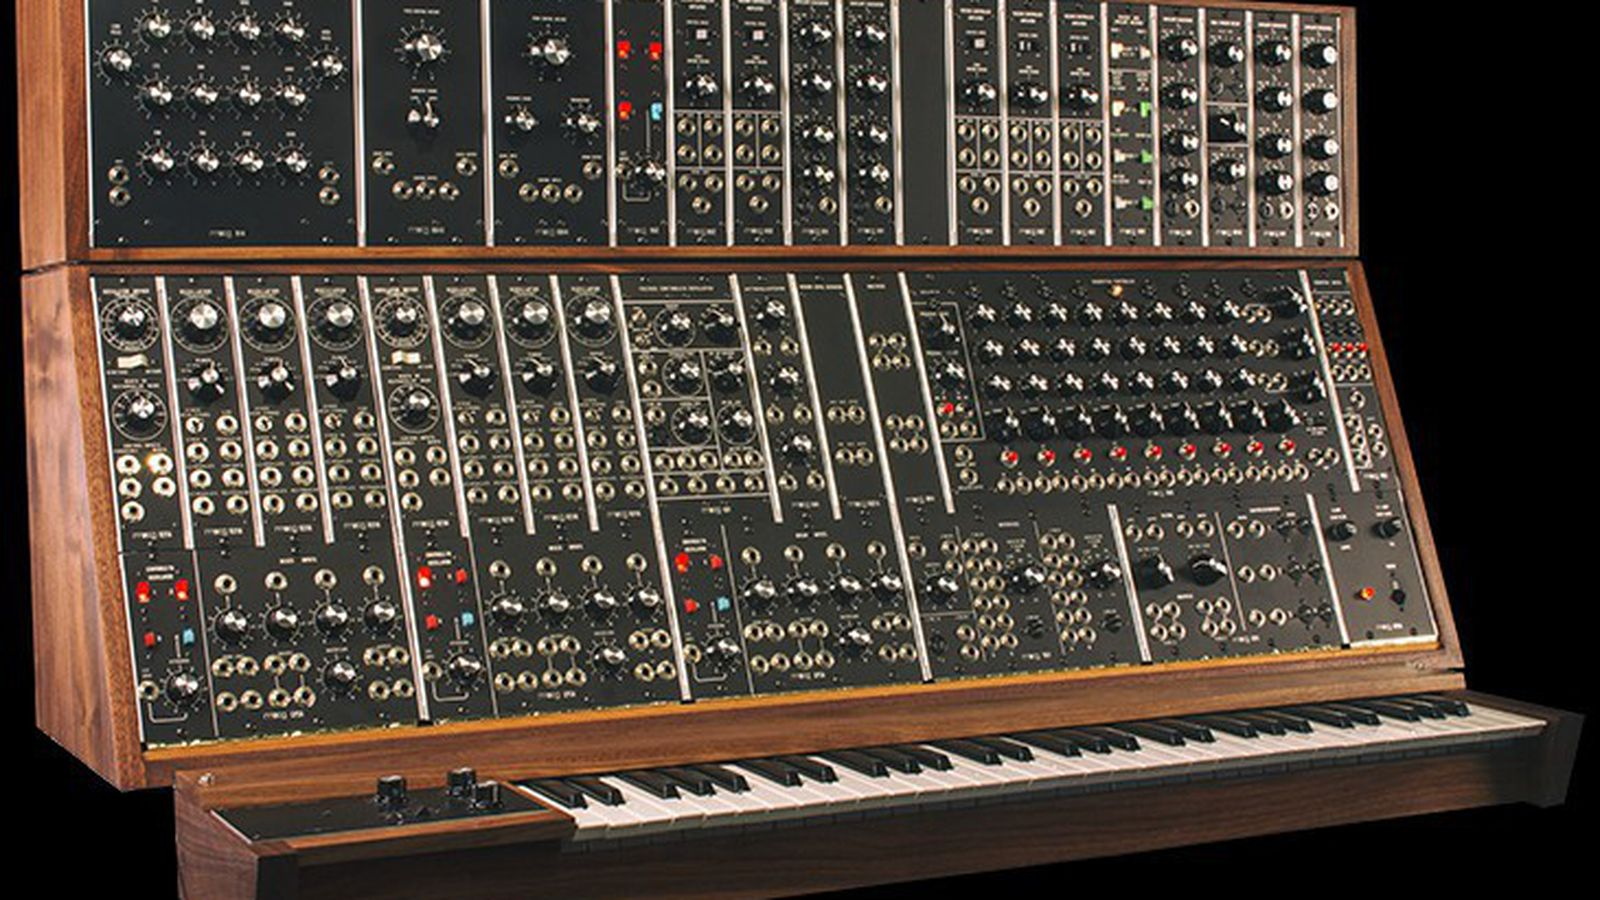 Moog is bringing back three massive synthesizers from the